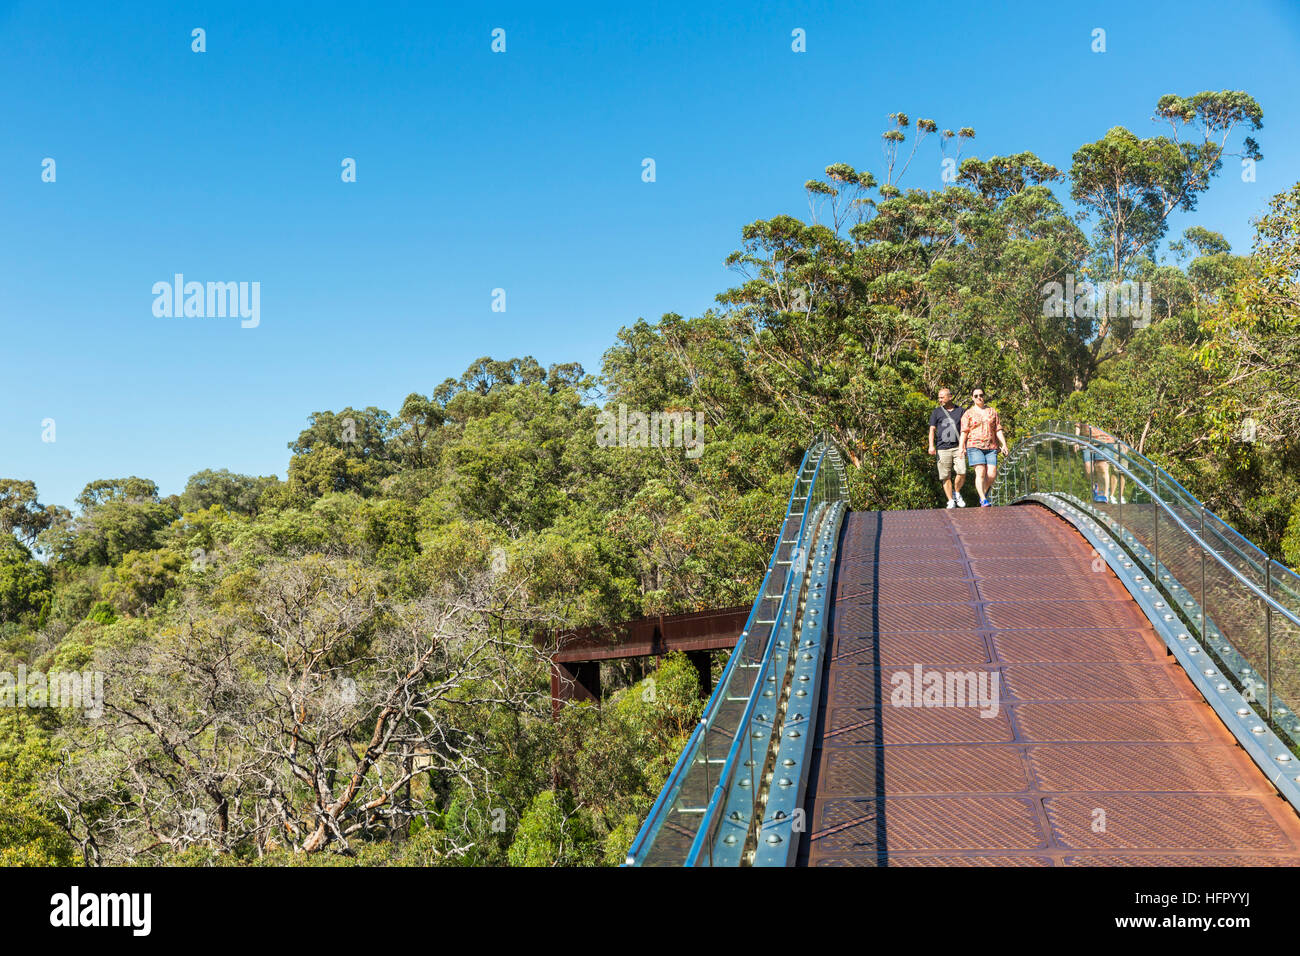 Visitors on the Lotterywest Federation Walkway in Kings Park, Perth, Western Australia, Australia - Stock Image